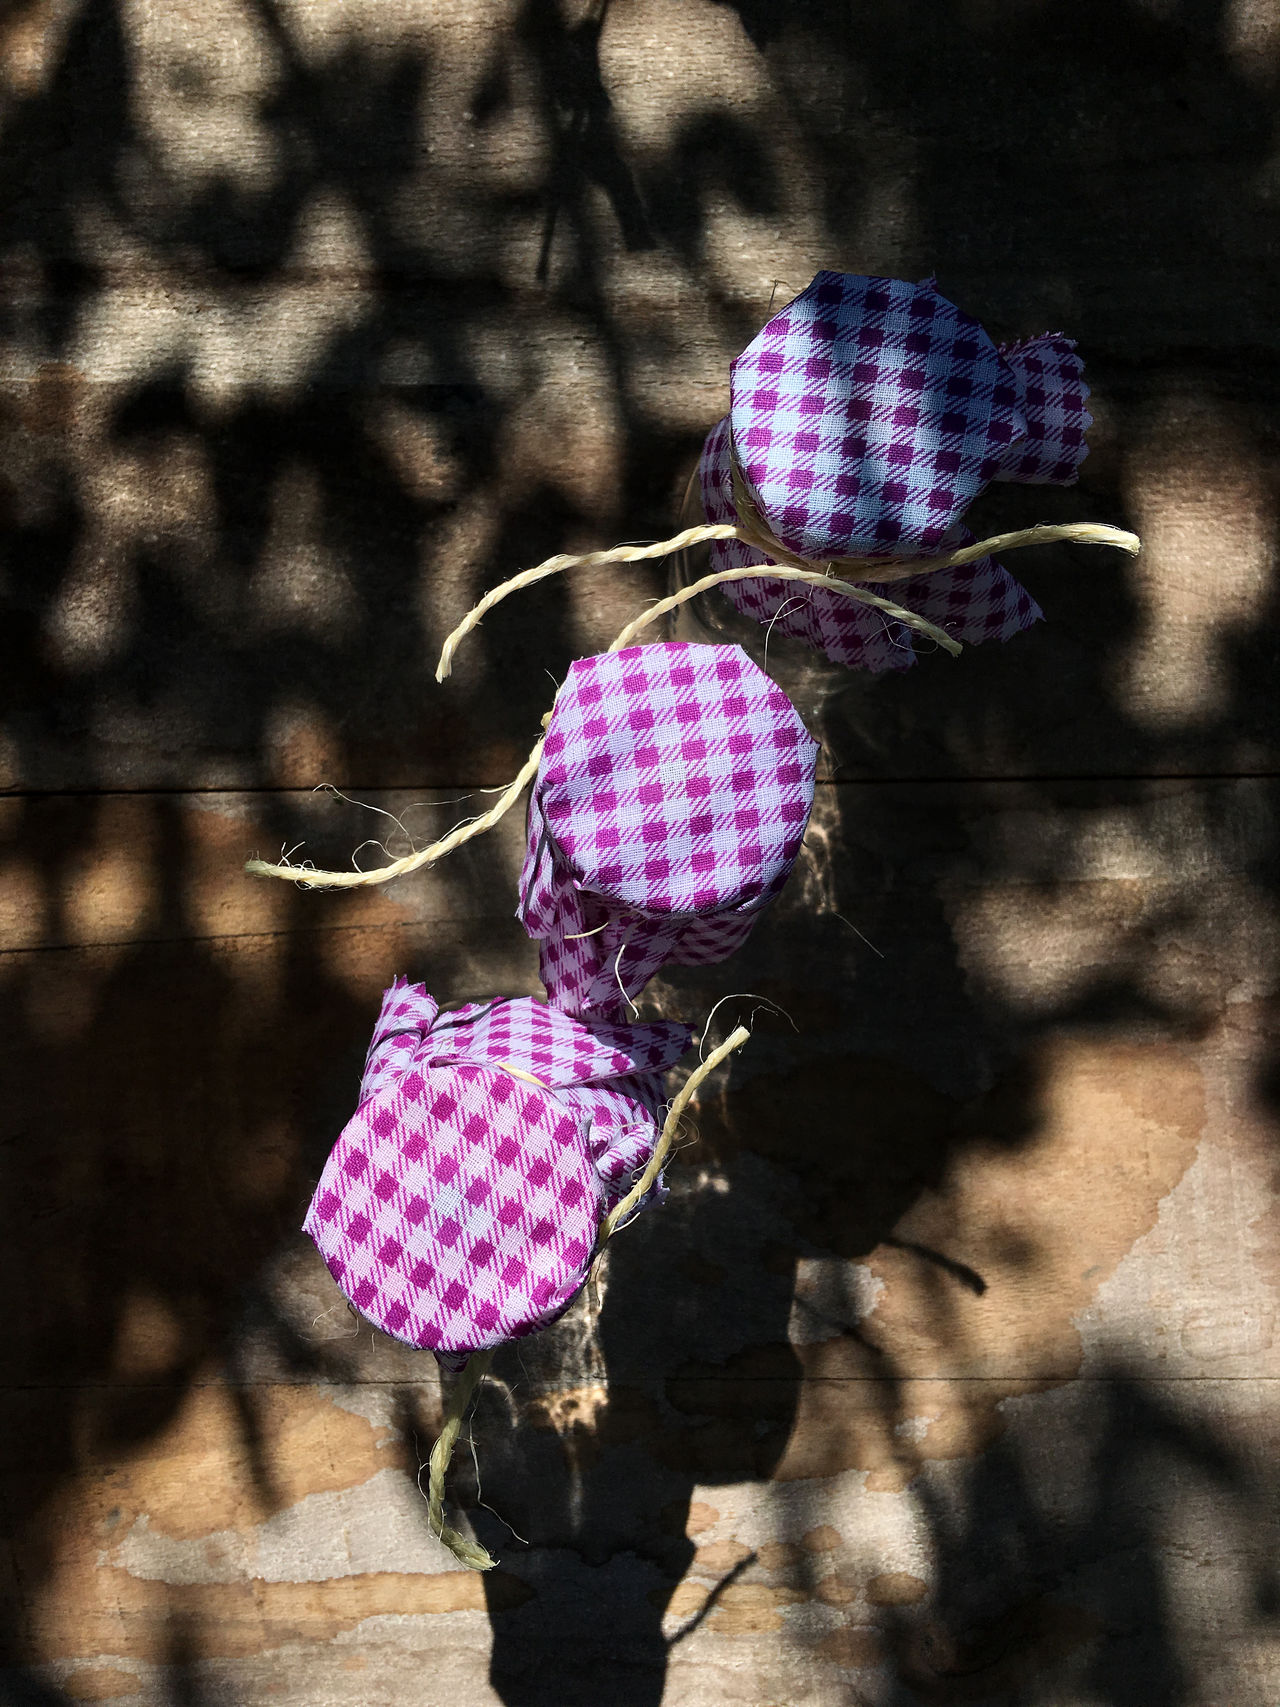 Three Glass Bottles Bottle Checked Pattern Close-up Color Image Day Directly Above Glass - Material Nature No People Outdoors Photography Purple Shabby Chic Shadow Sunlight Table Three Objects Tied Vertical Wood - Material